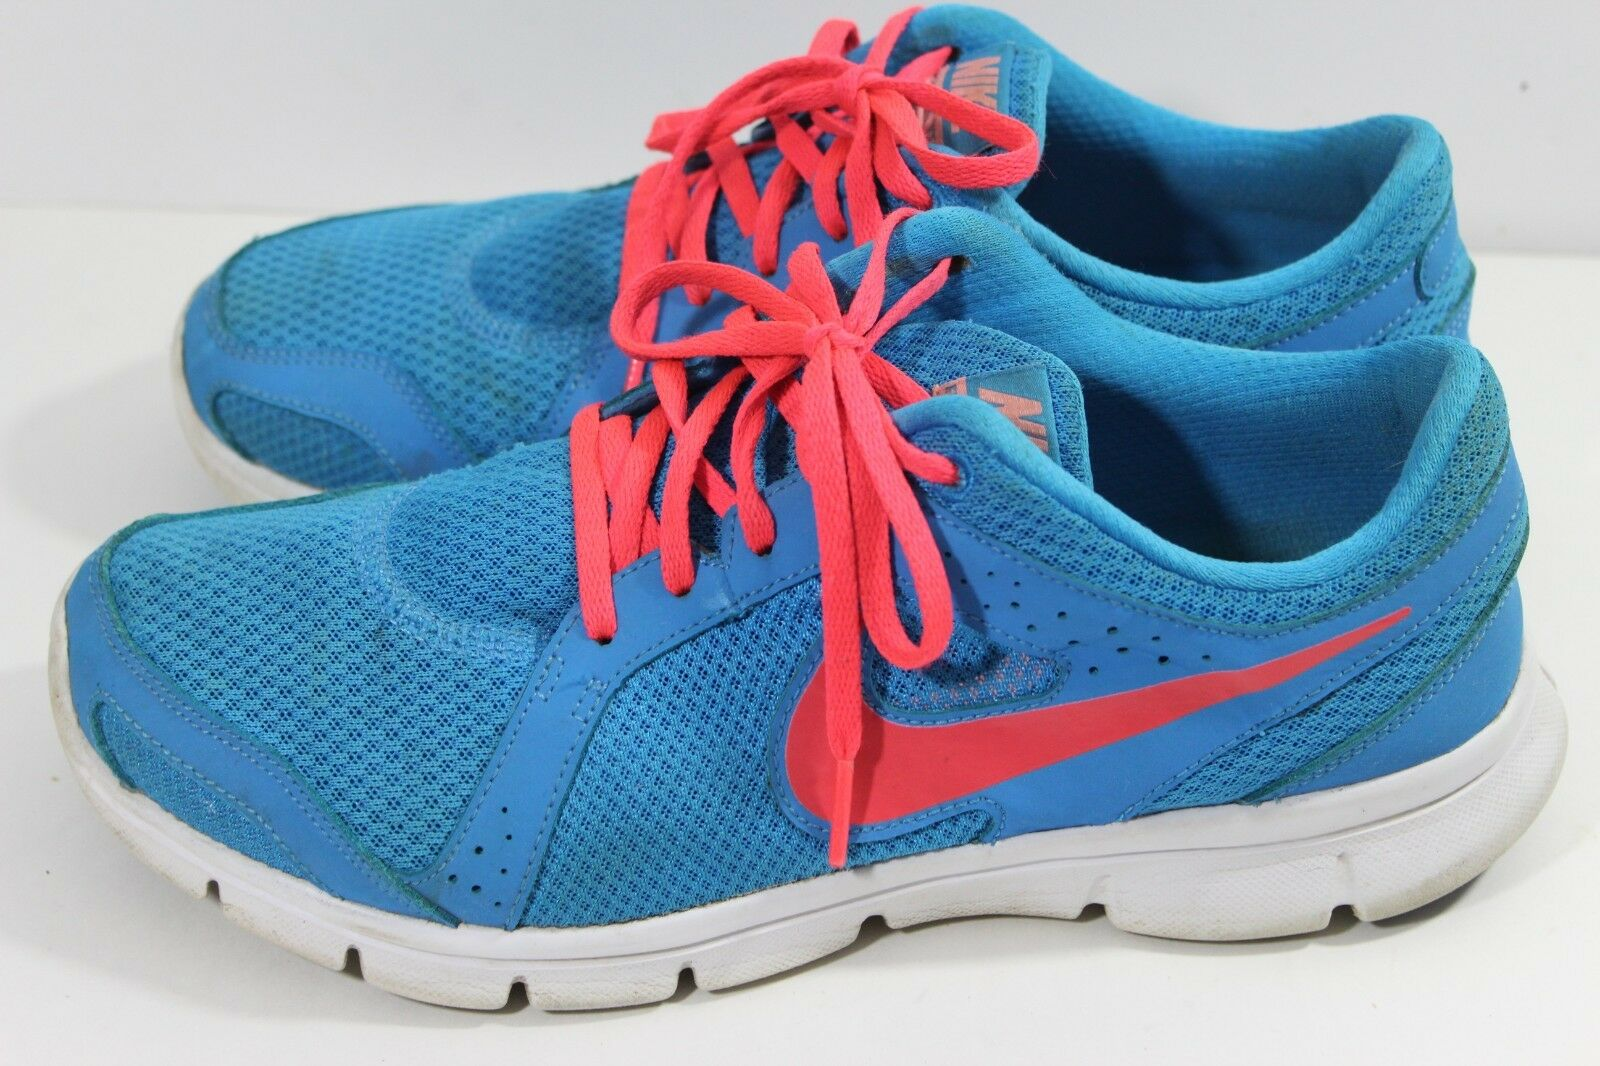 Nike Womens Flex Experience RN 2 Running Blue 599548-400  Shoes Sz 9.5 Price reduction New shoes for men and women, limited time discount